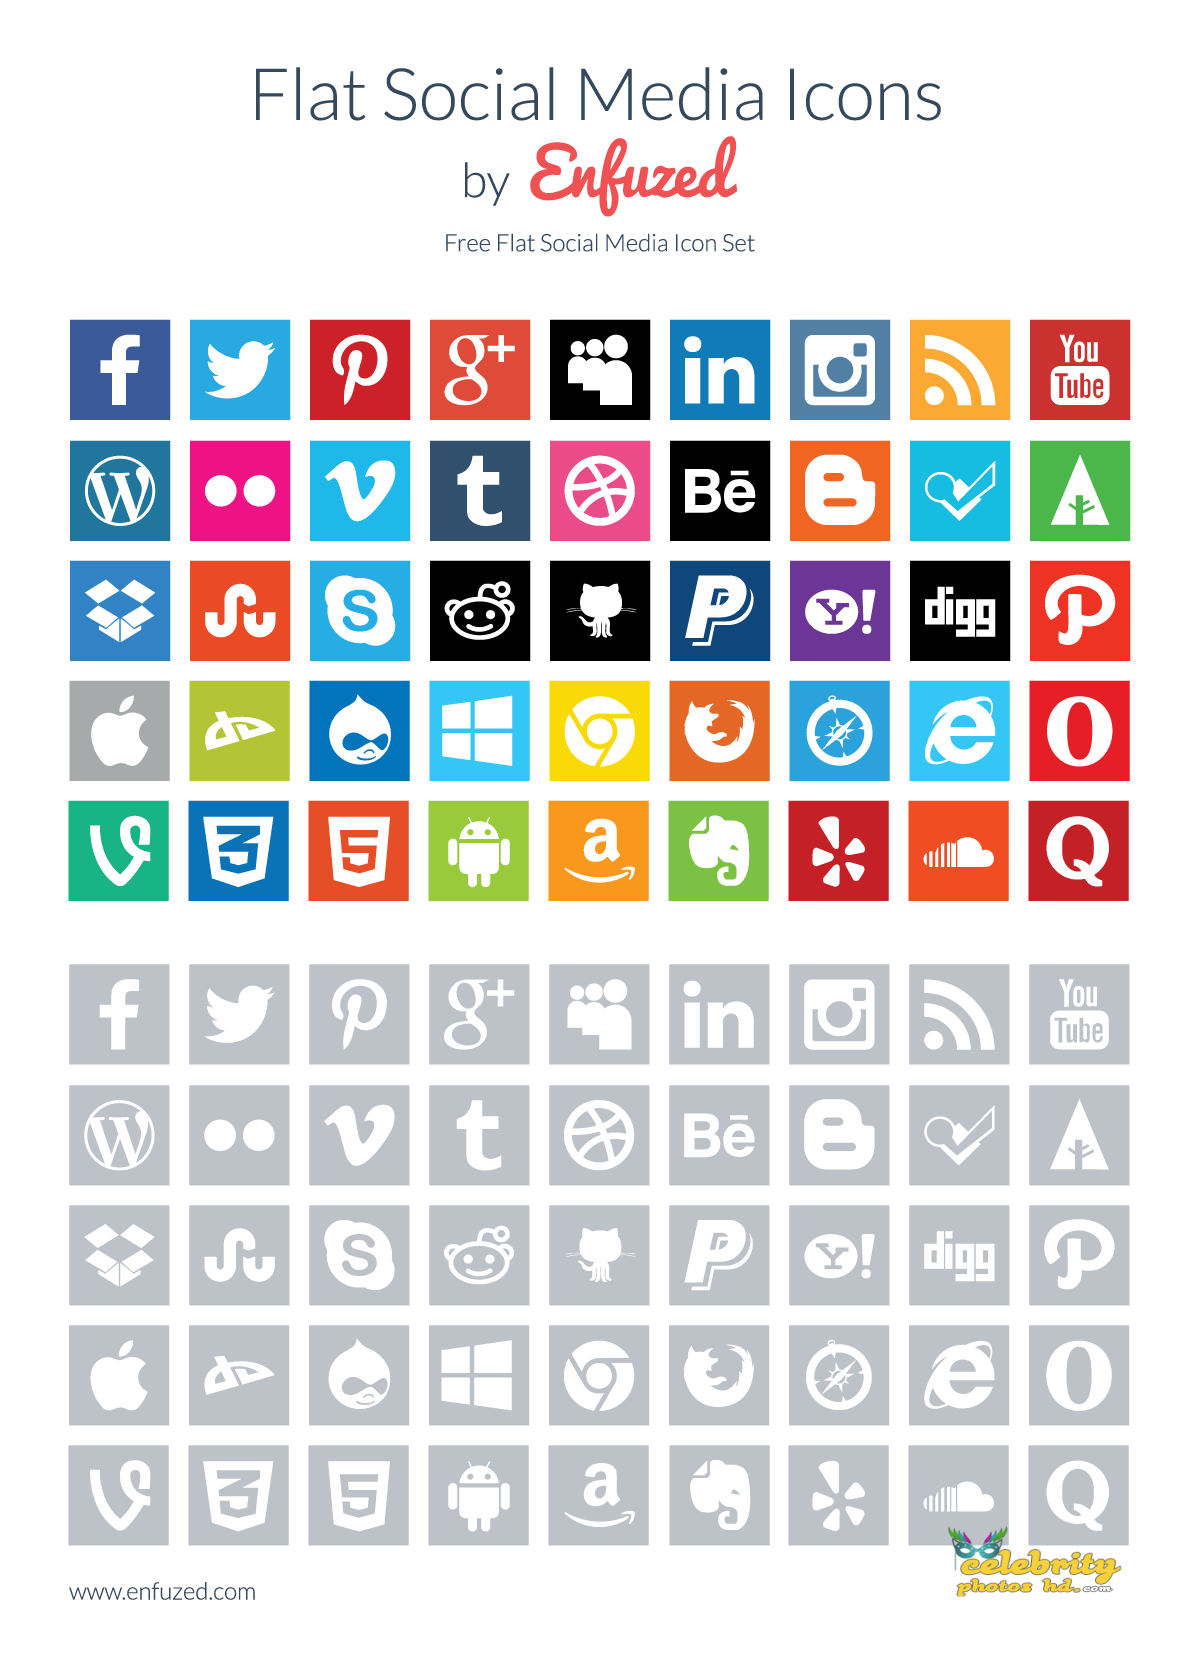 flat-social-media-icons-enfuzed